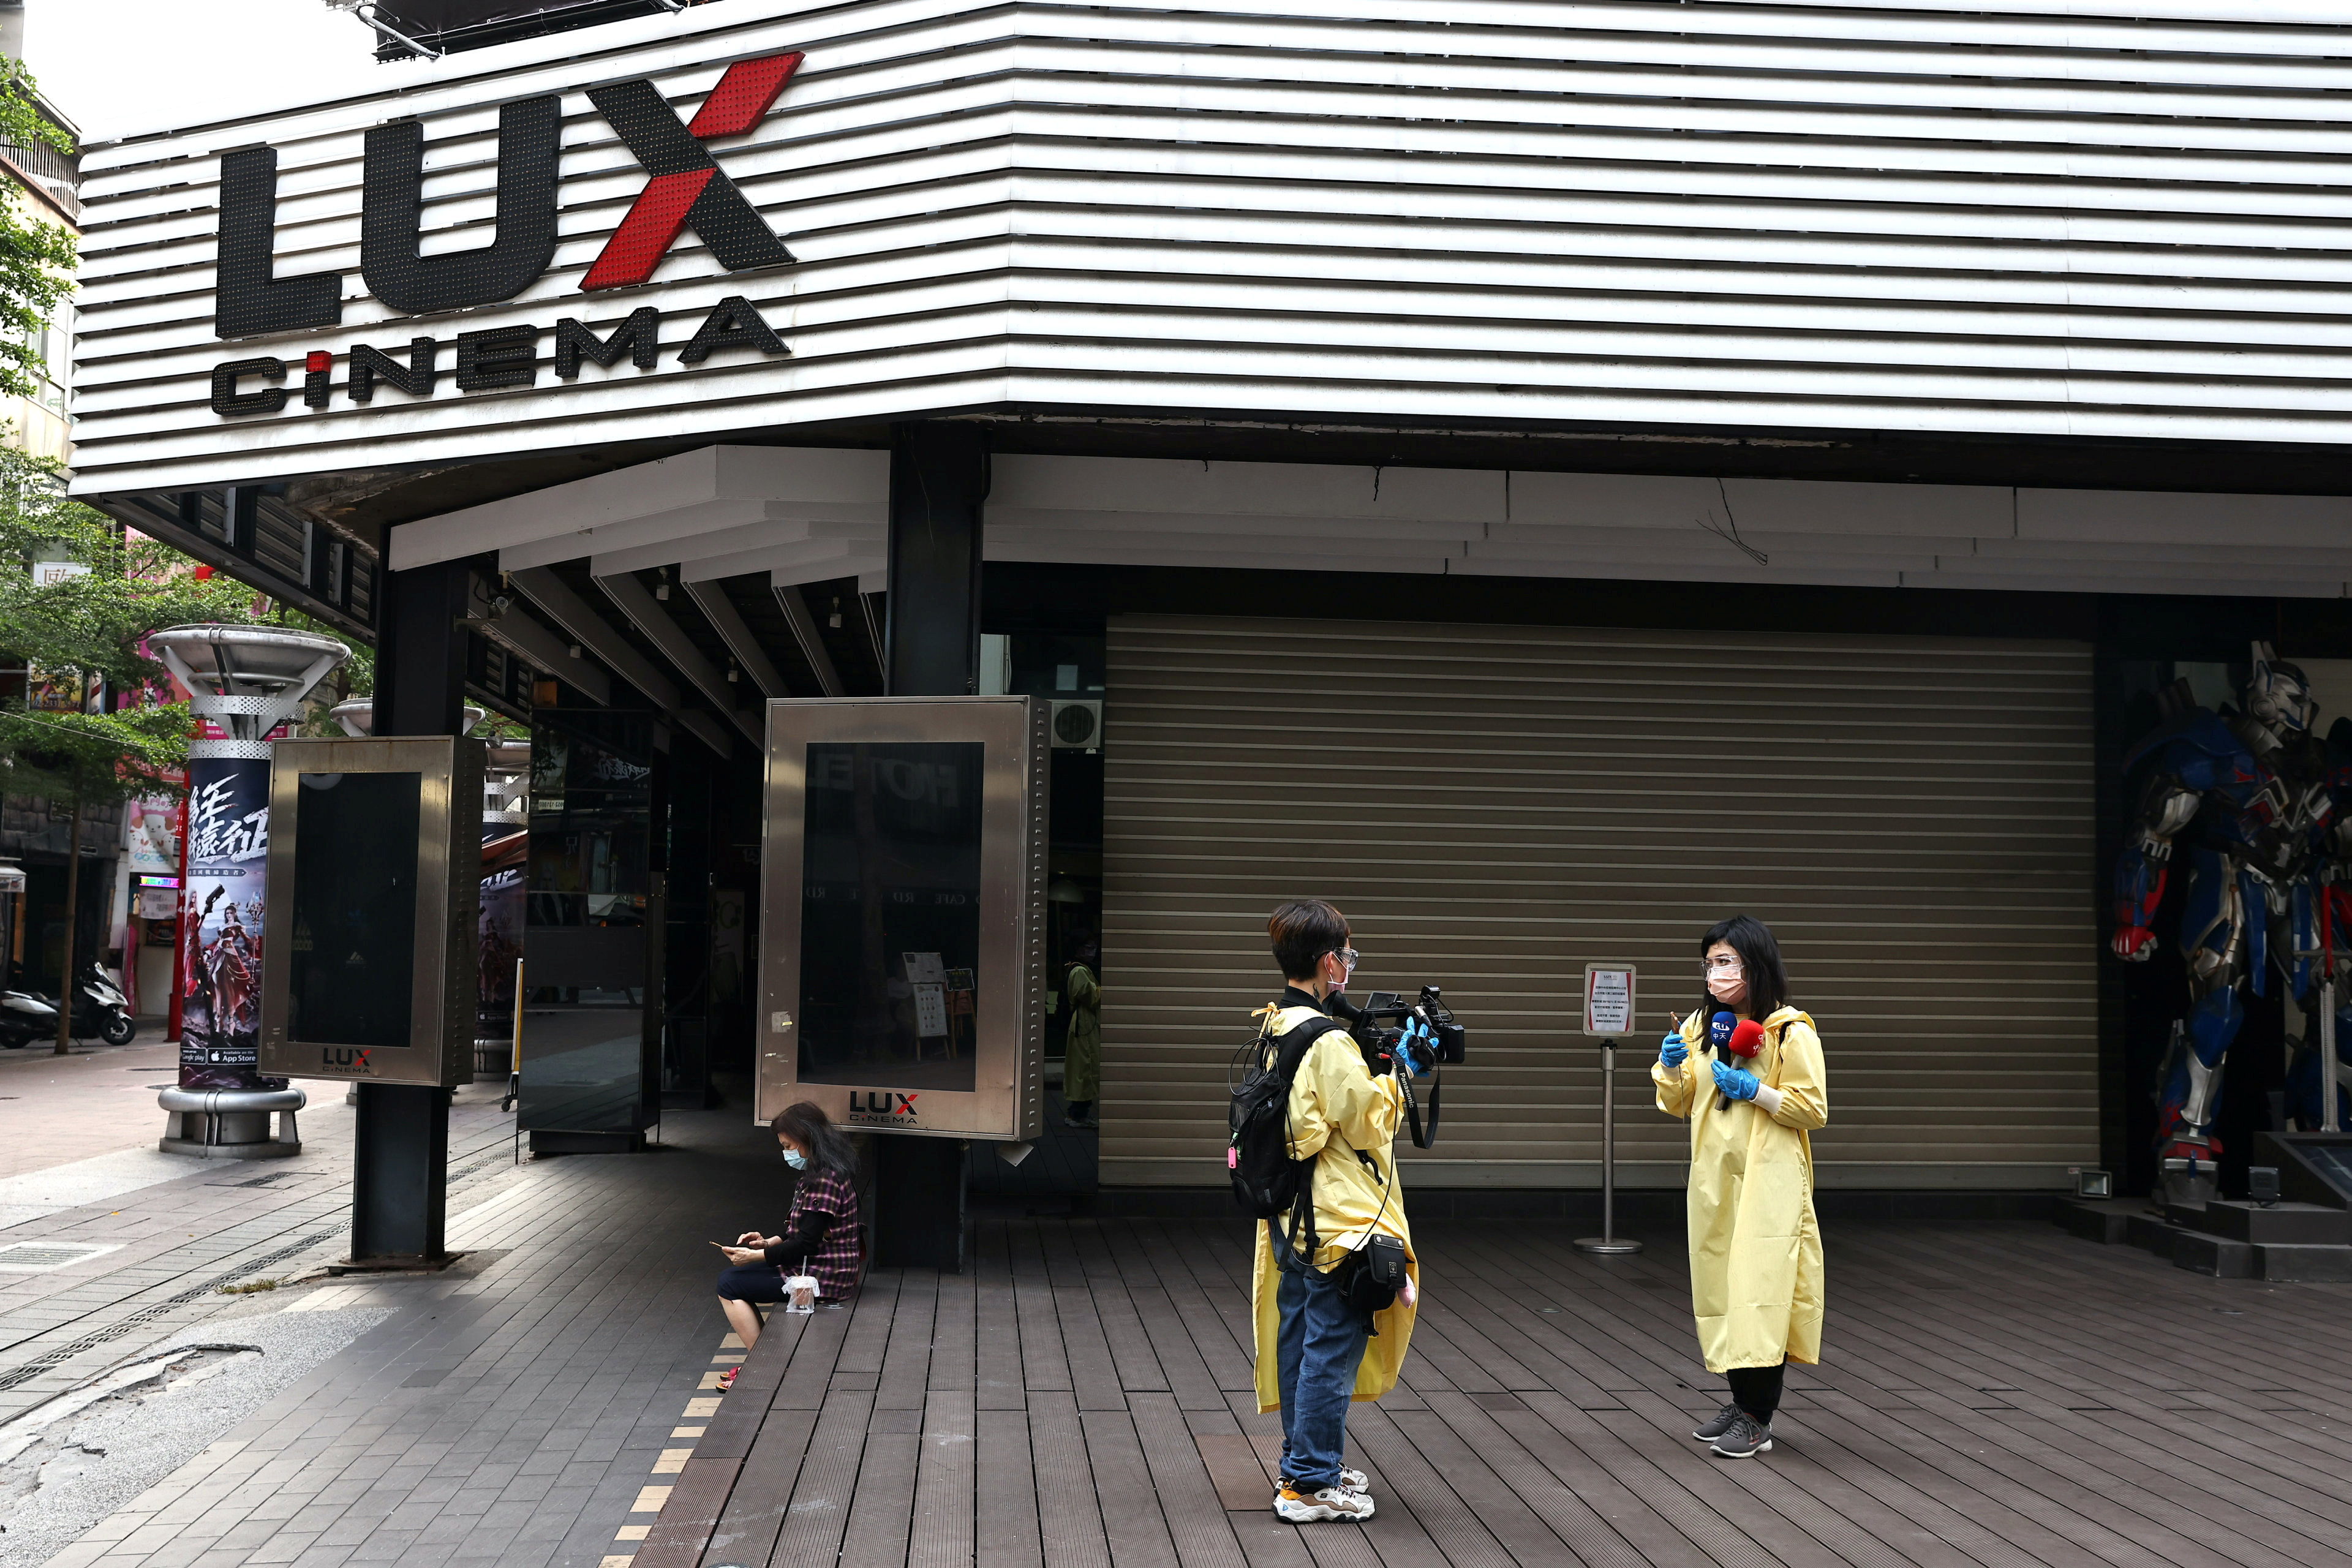 Reporters in protective gear work in front of a closed cinema, after the cinemas and other venues were ordered to close amid an increasing number of COVID-19 infections, in Taipei, Taiwan, May 15, 2021. REUTERS/Ann Wang